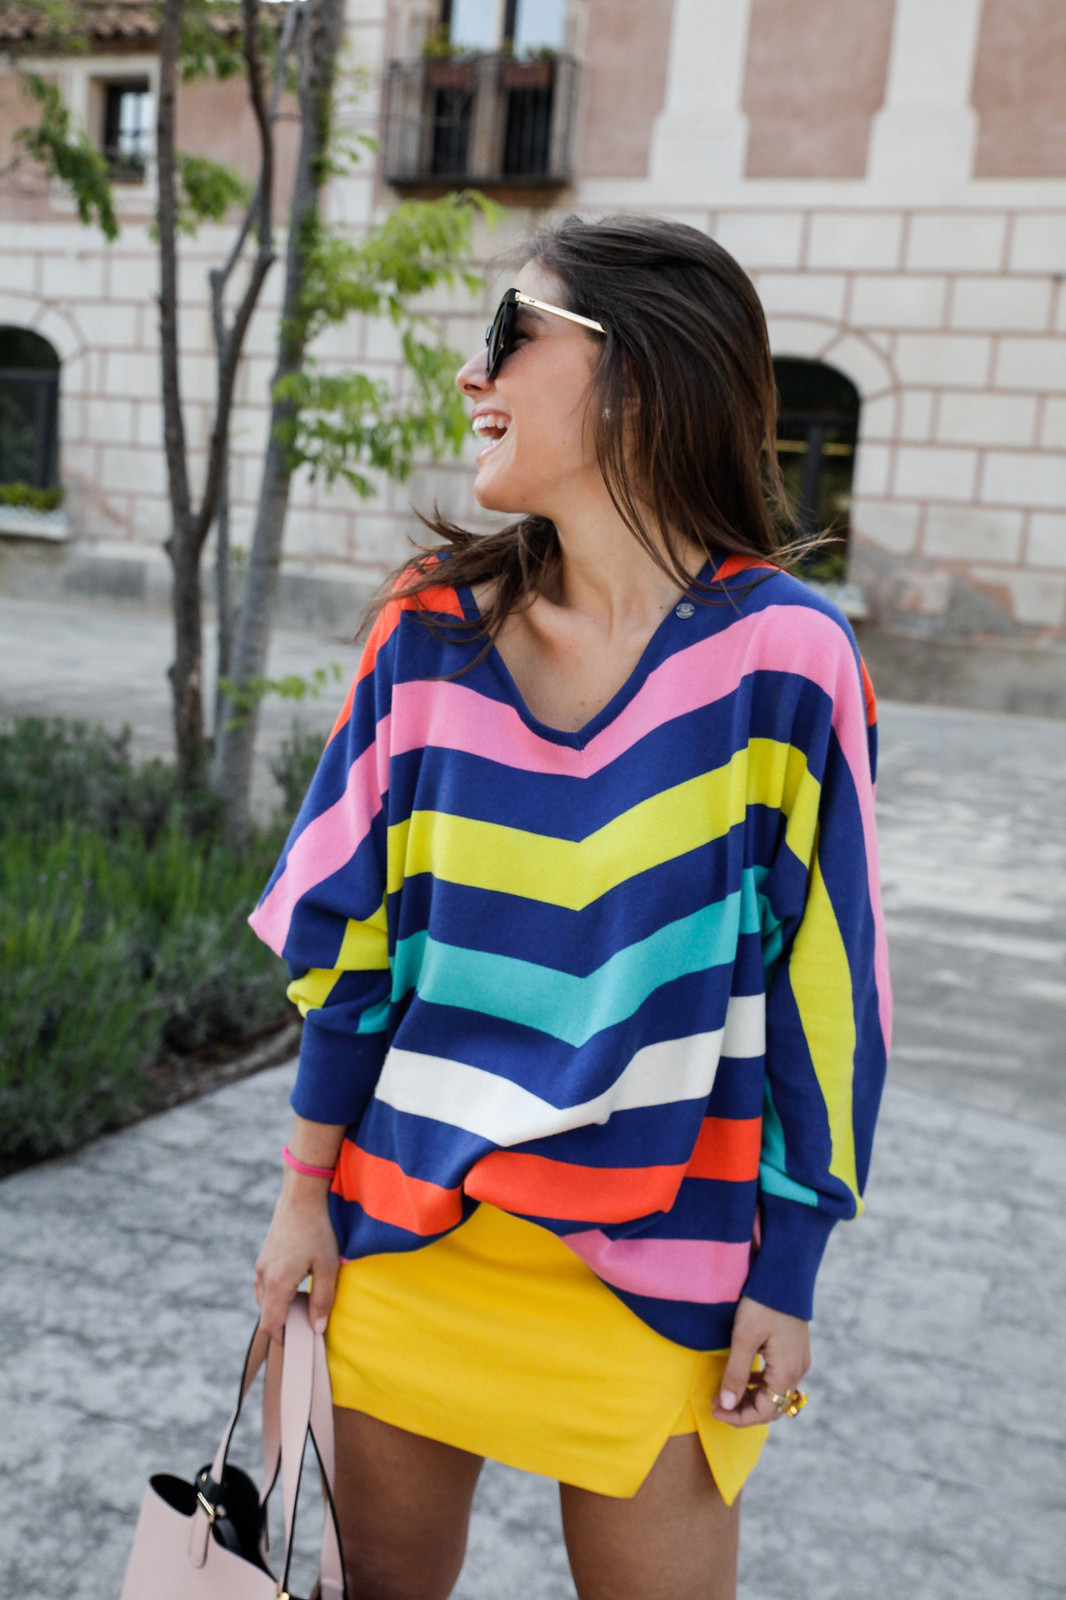 07_sweater stripes color yellow skirt_theguestgirl